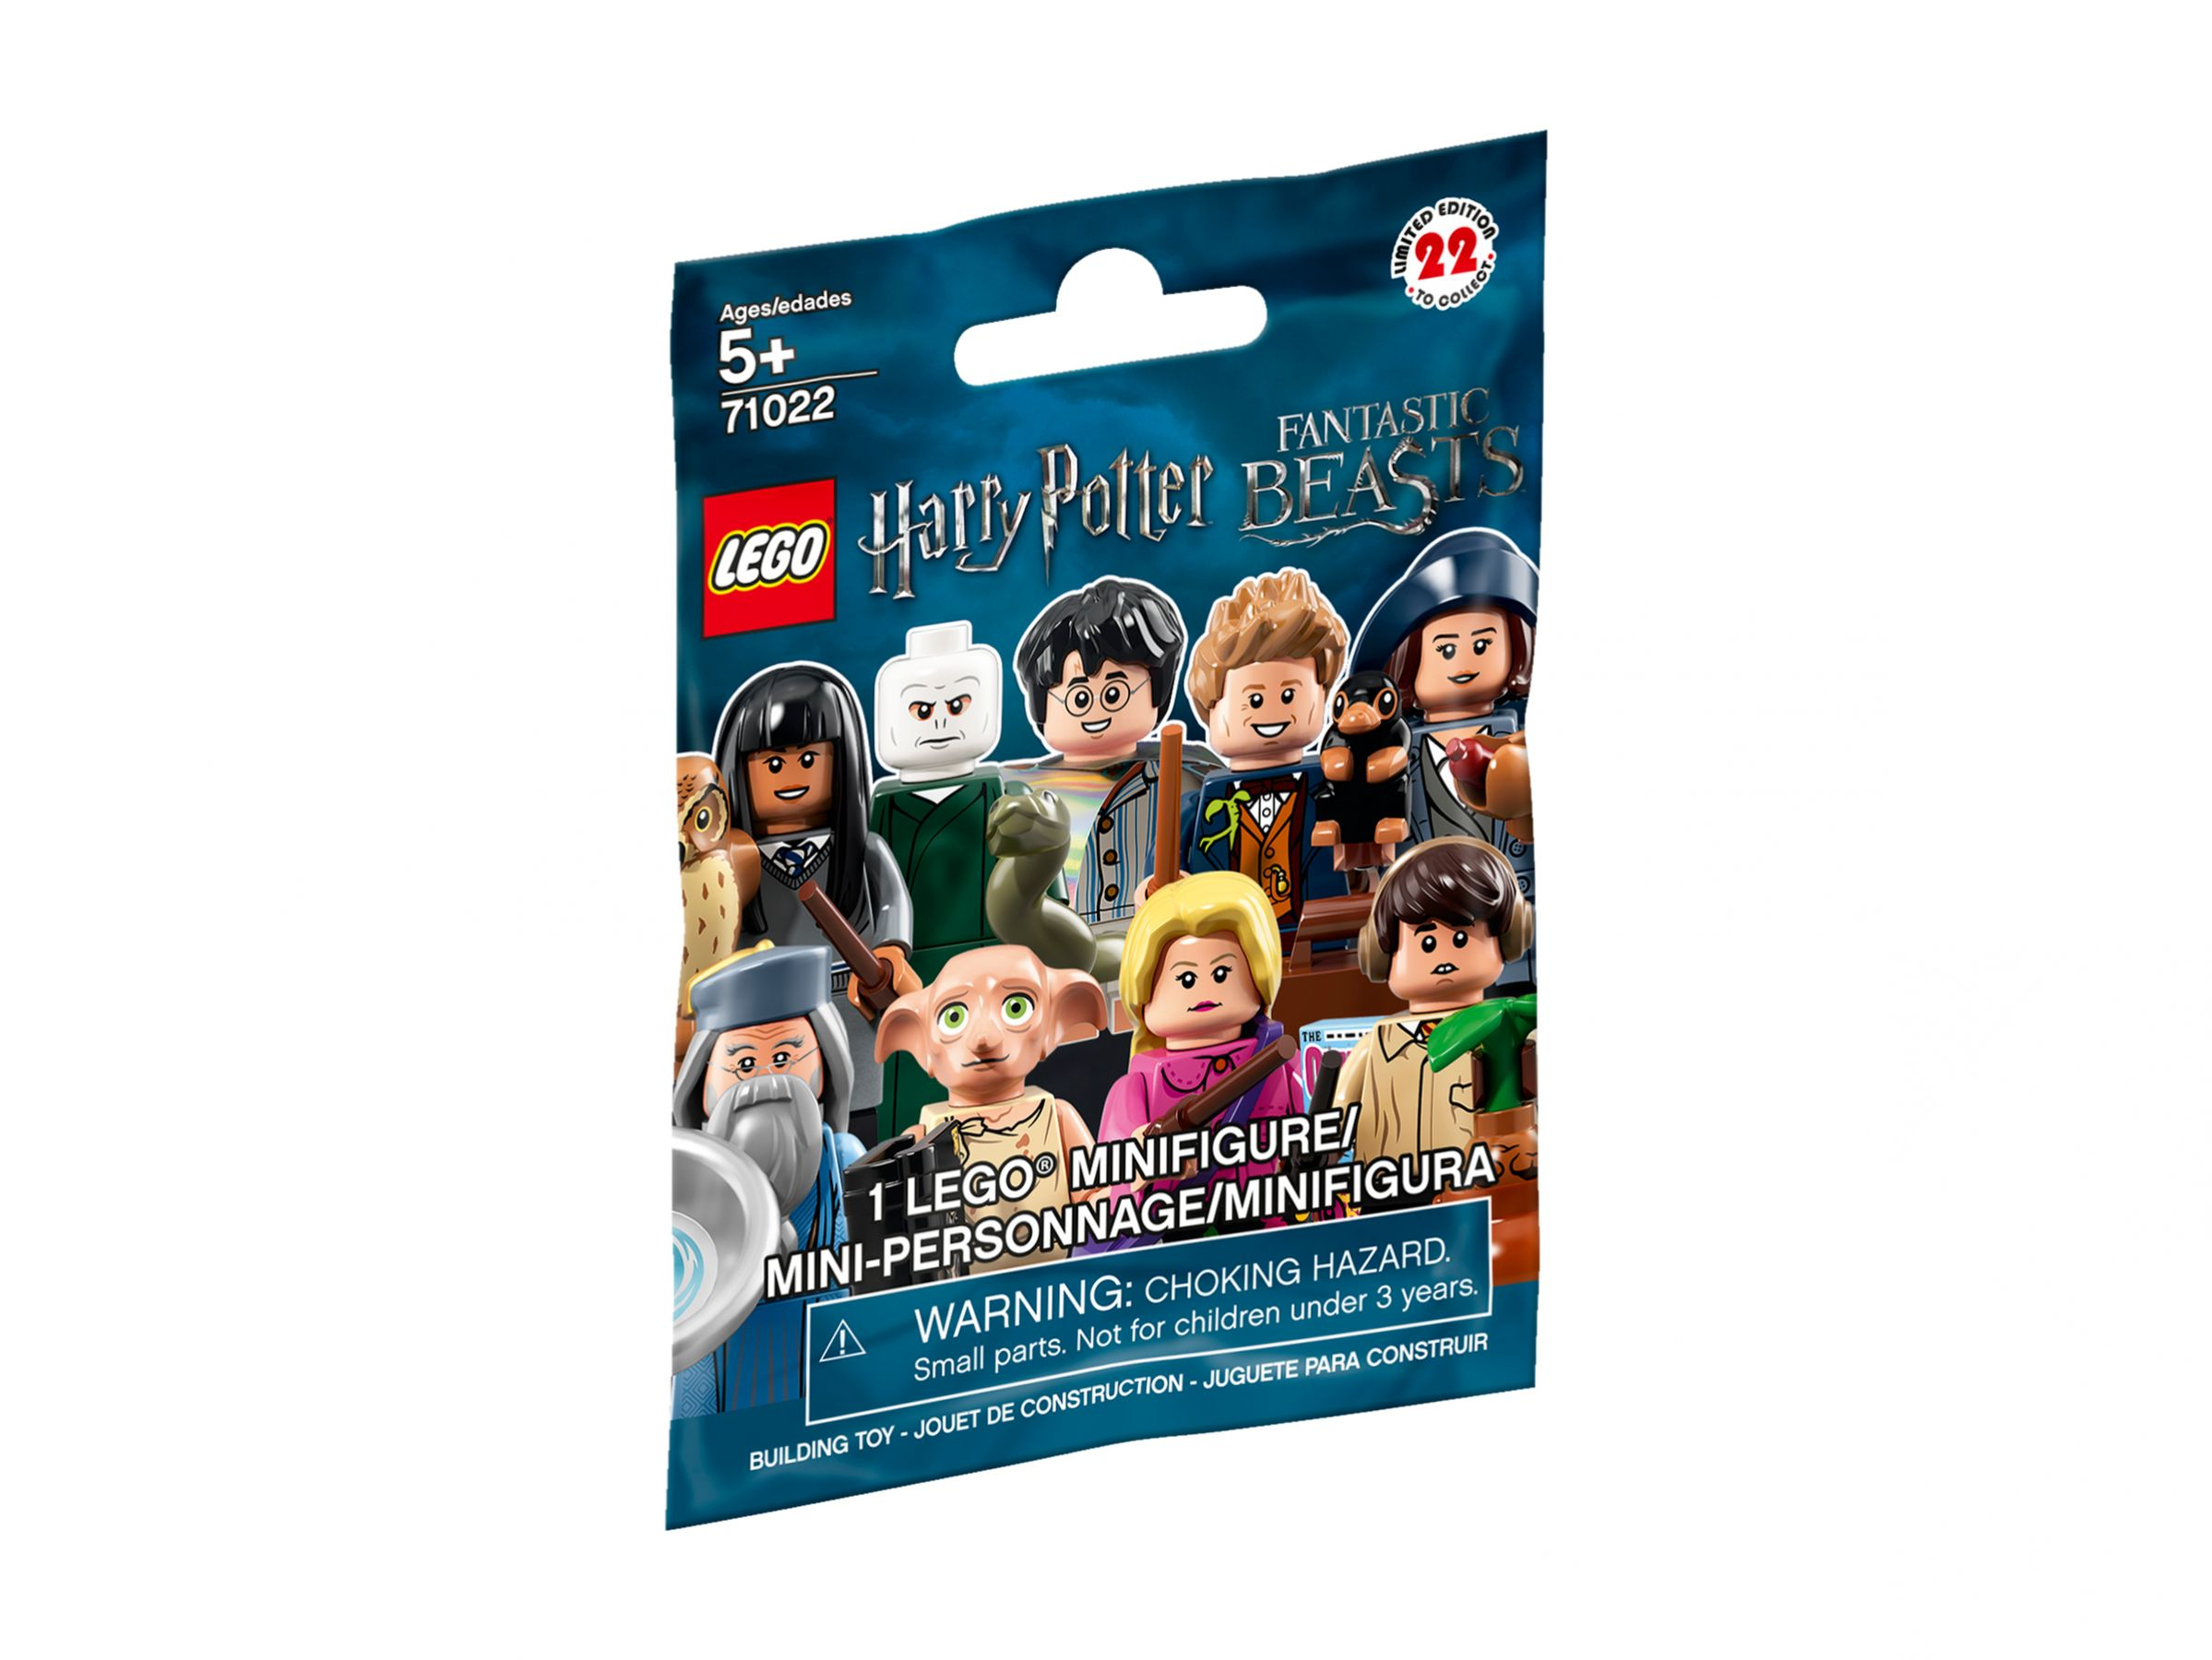 LEGO Collectable Minifigures 71022 Harry Potter Minifiguren Serie 1 - 60er Box LEGO_71022_alt1.jpg